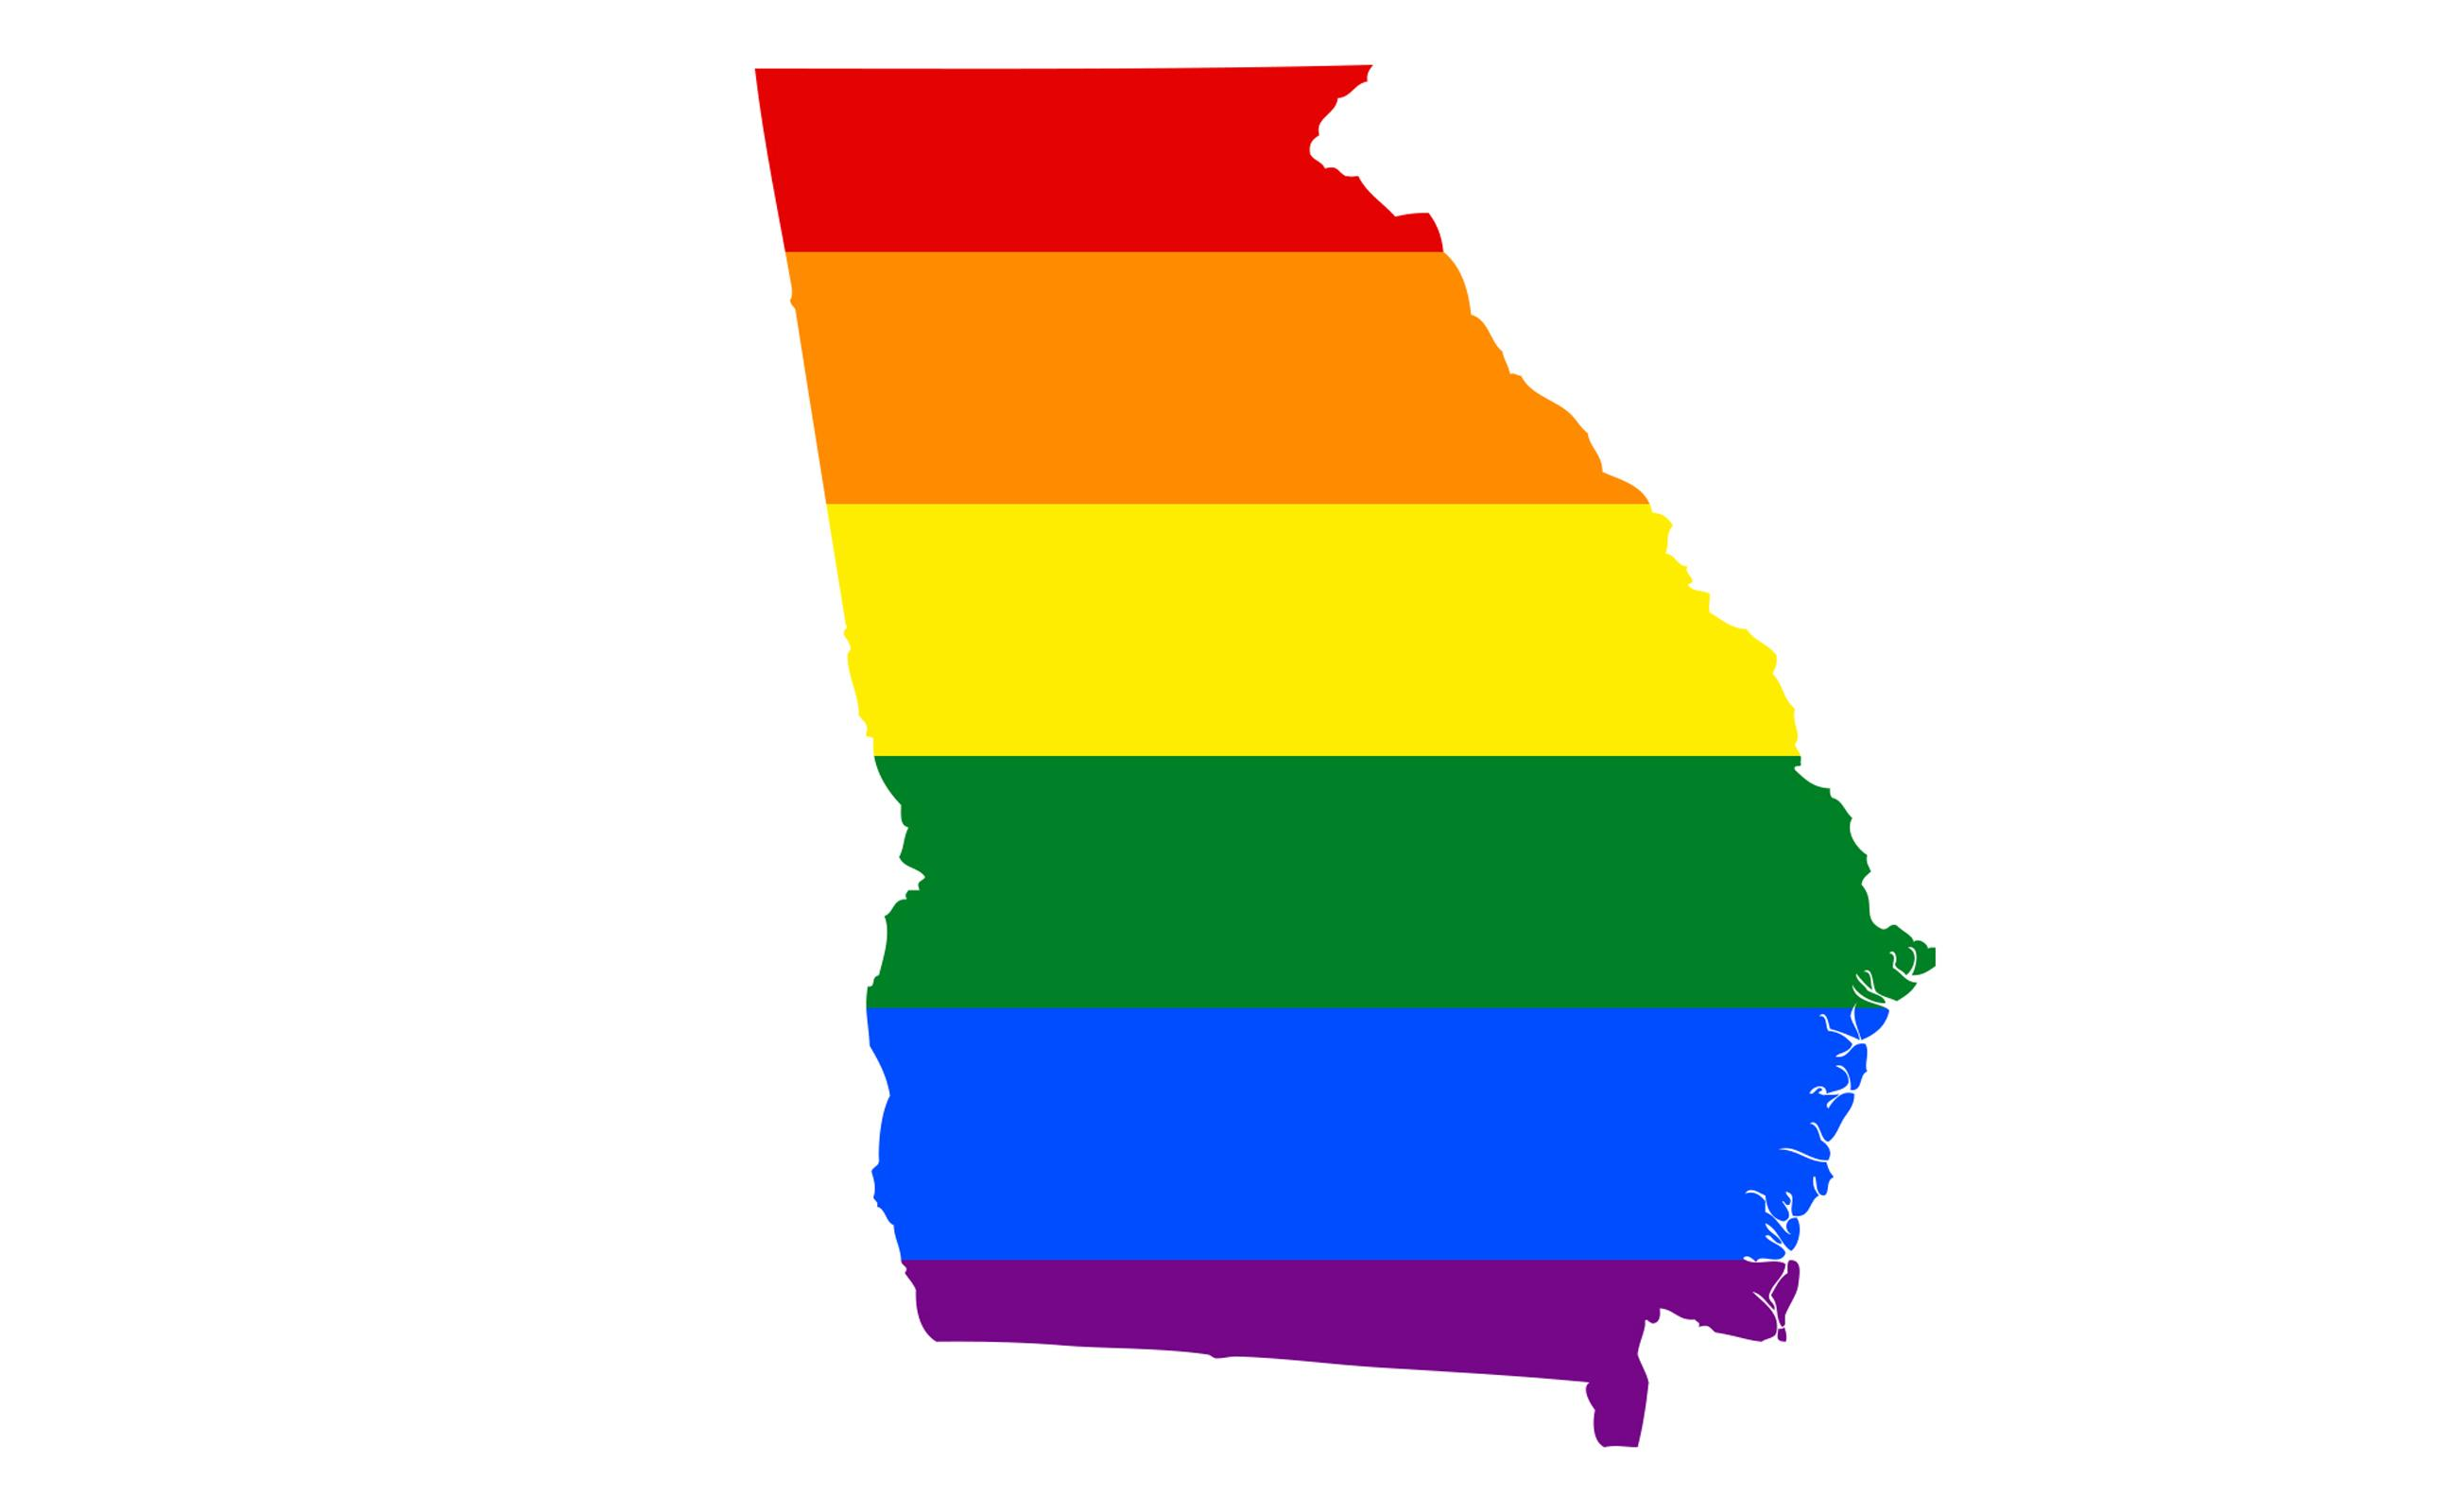 State of Georgia depicted in rainbow colors